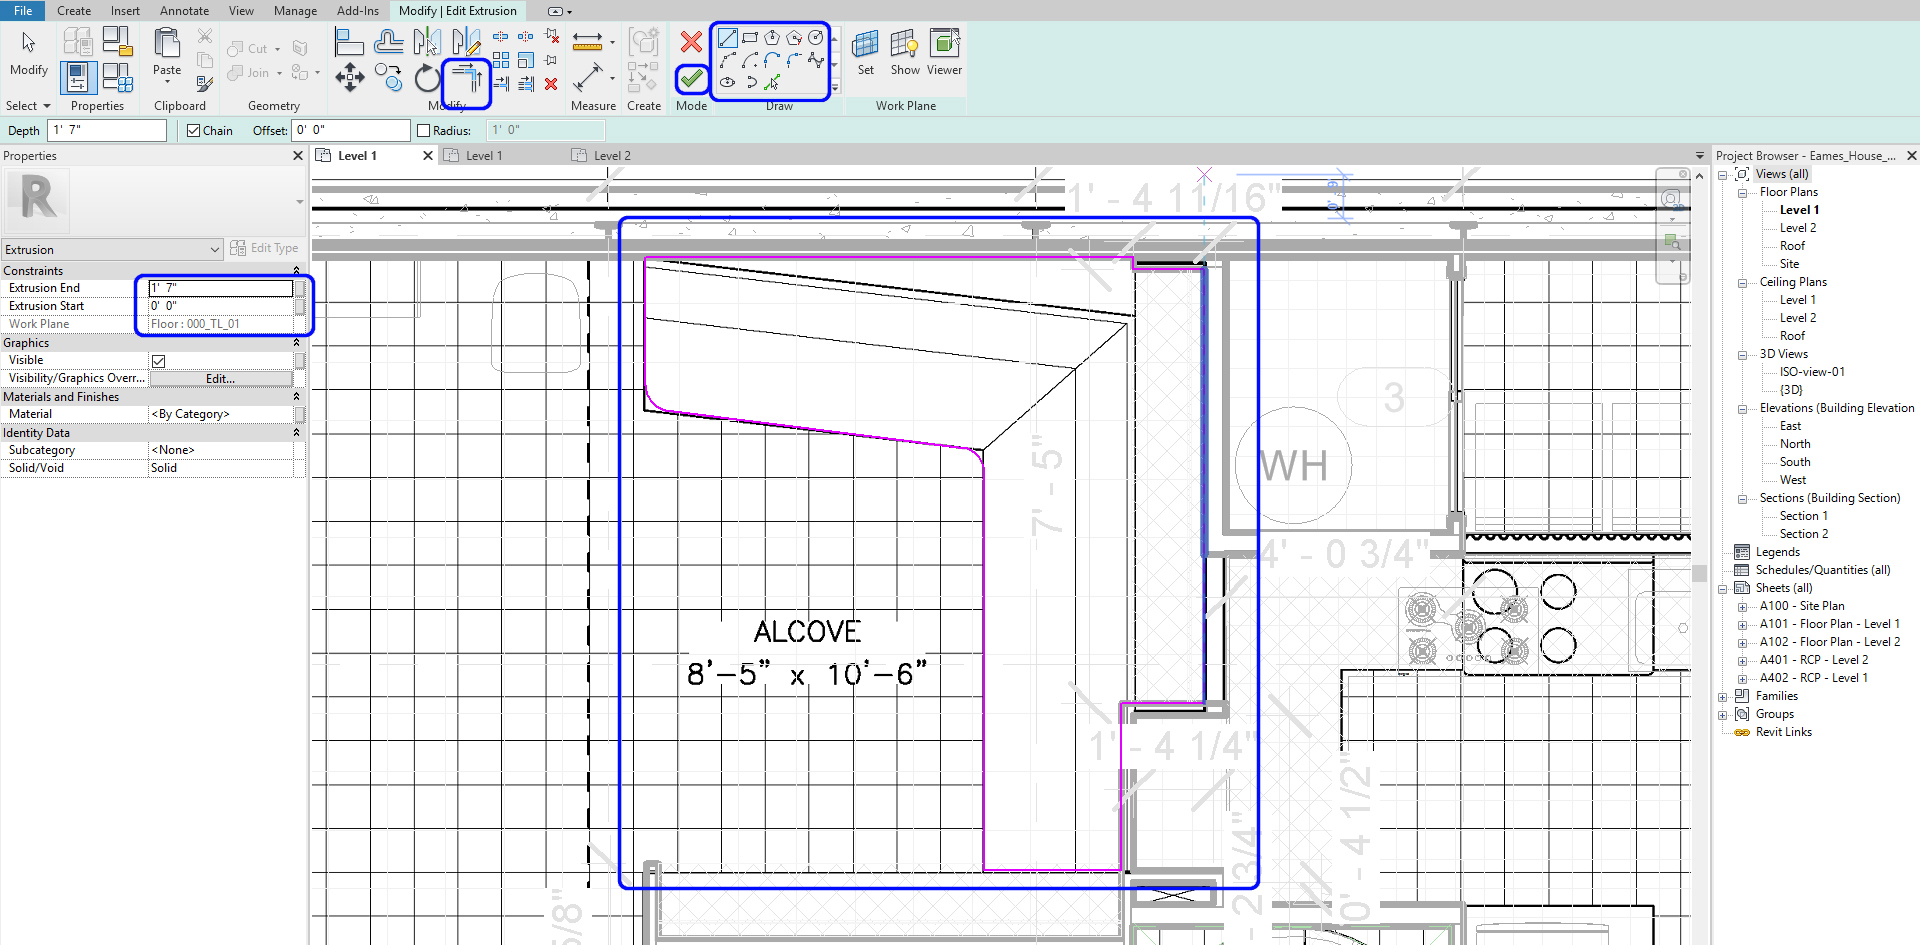 It indicates what to draw lines for the component-model in-place.